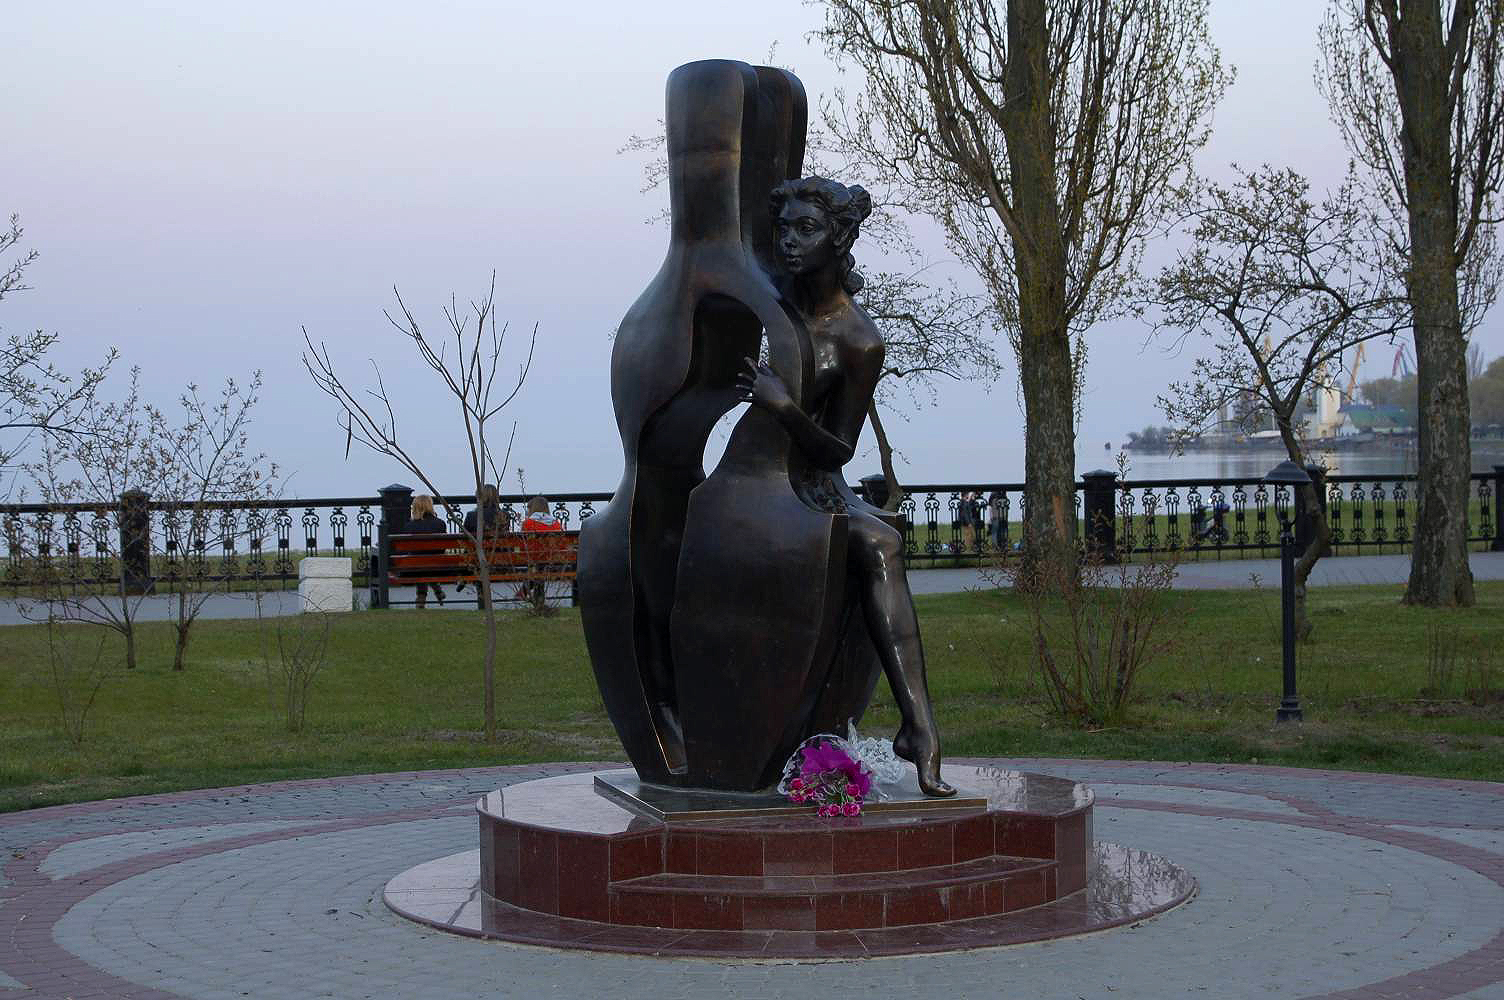 The sculpture was unveiled in 2008 on the Pushkin Embankment in downtown Taganrog in Rostov Oblast, Russia in honor of Chekhov's 150th birth anniversary